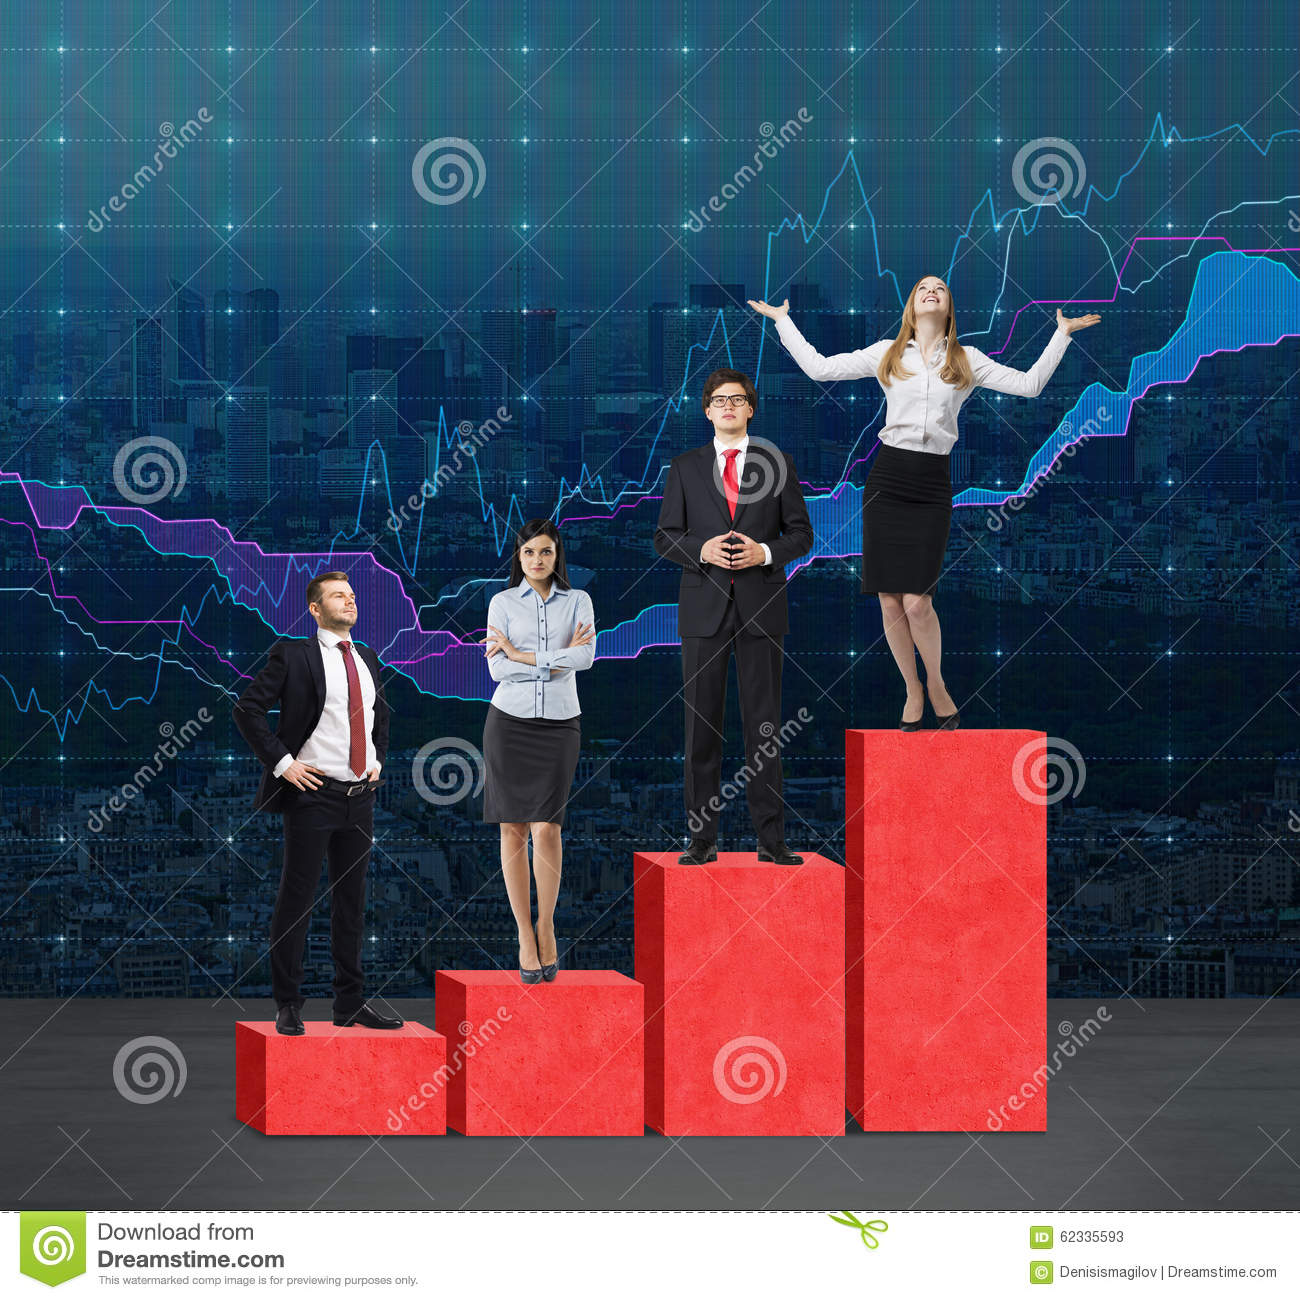 Stairs as a huge red bar chart. Business people are standing on each step as a concept of range of problems or levels of responsib